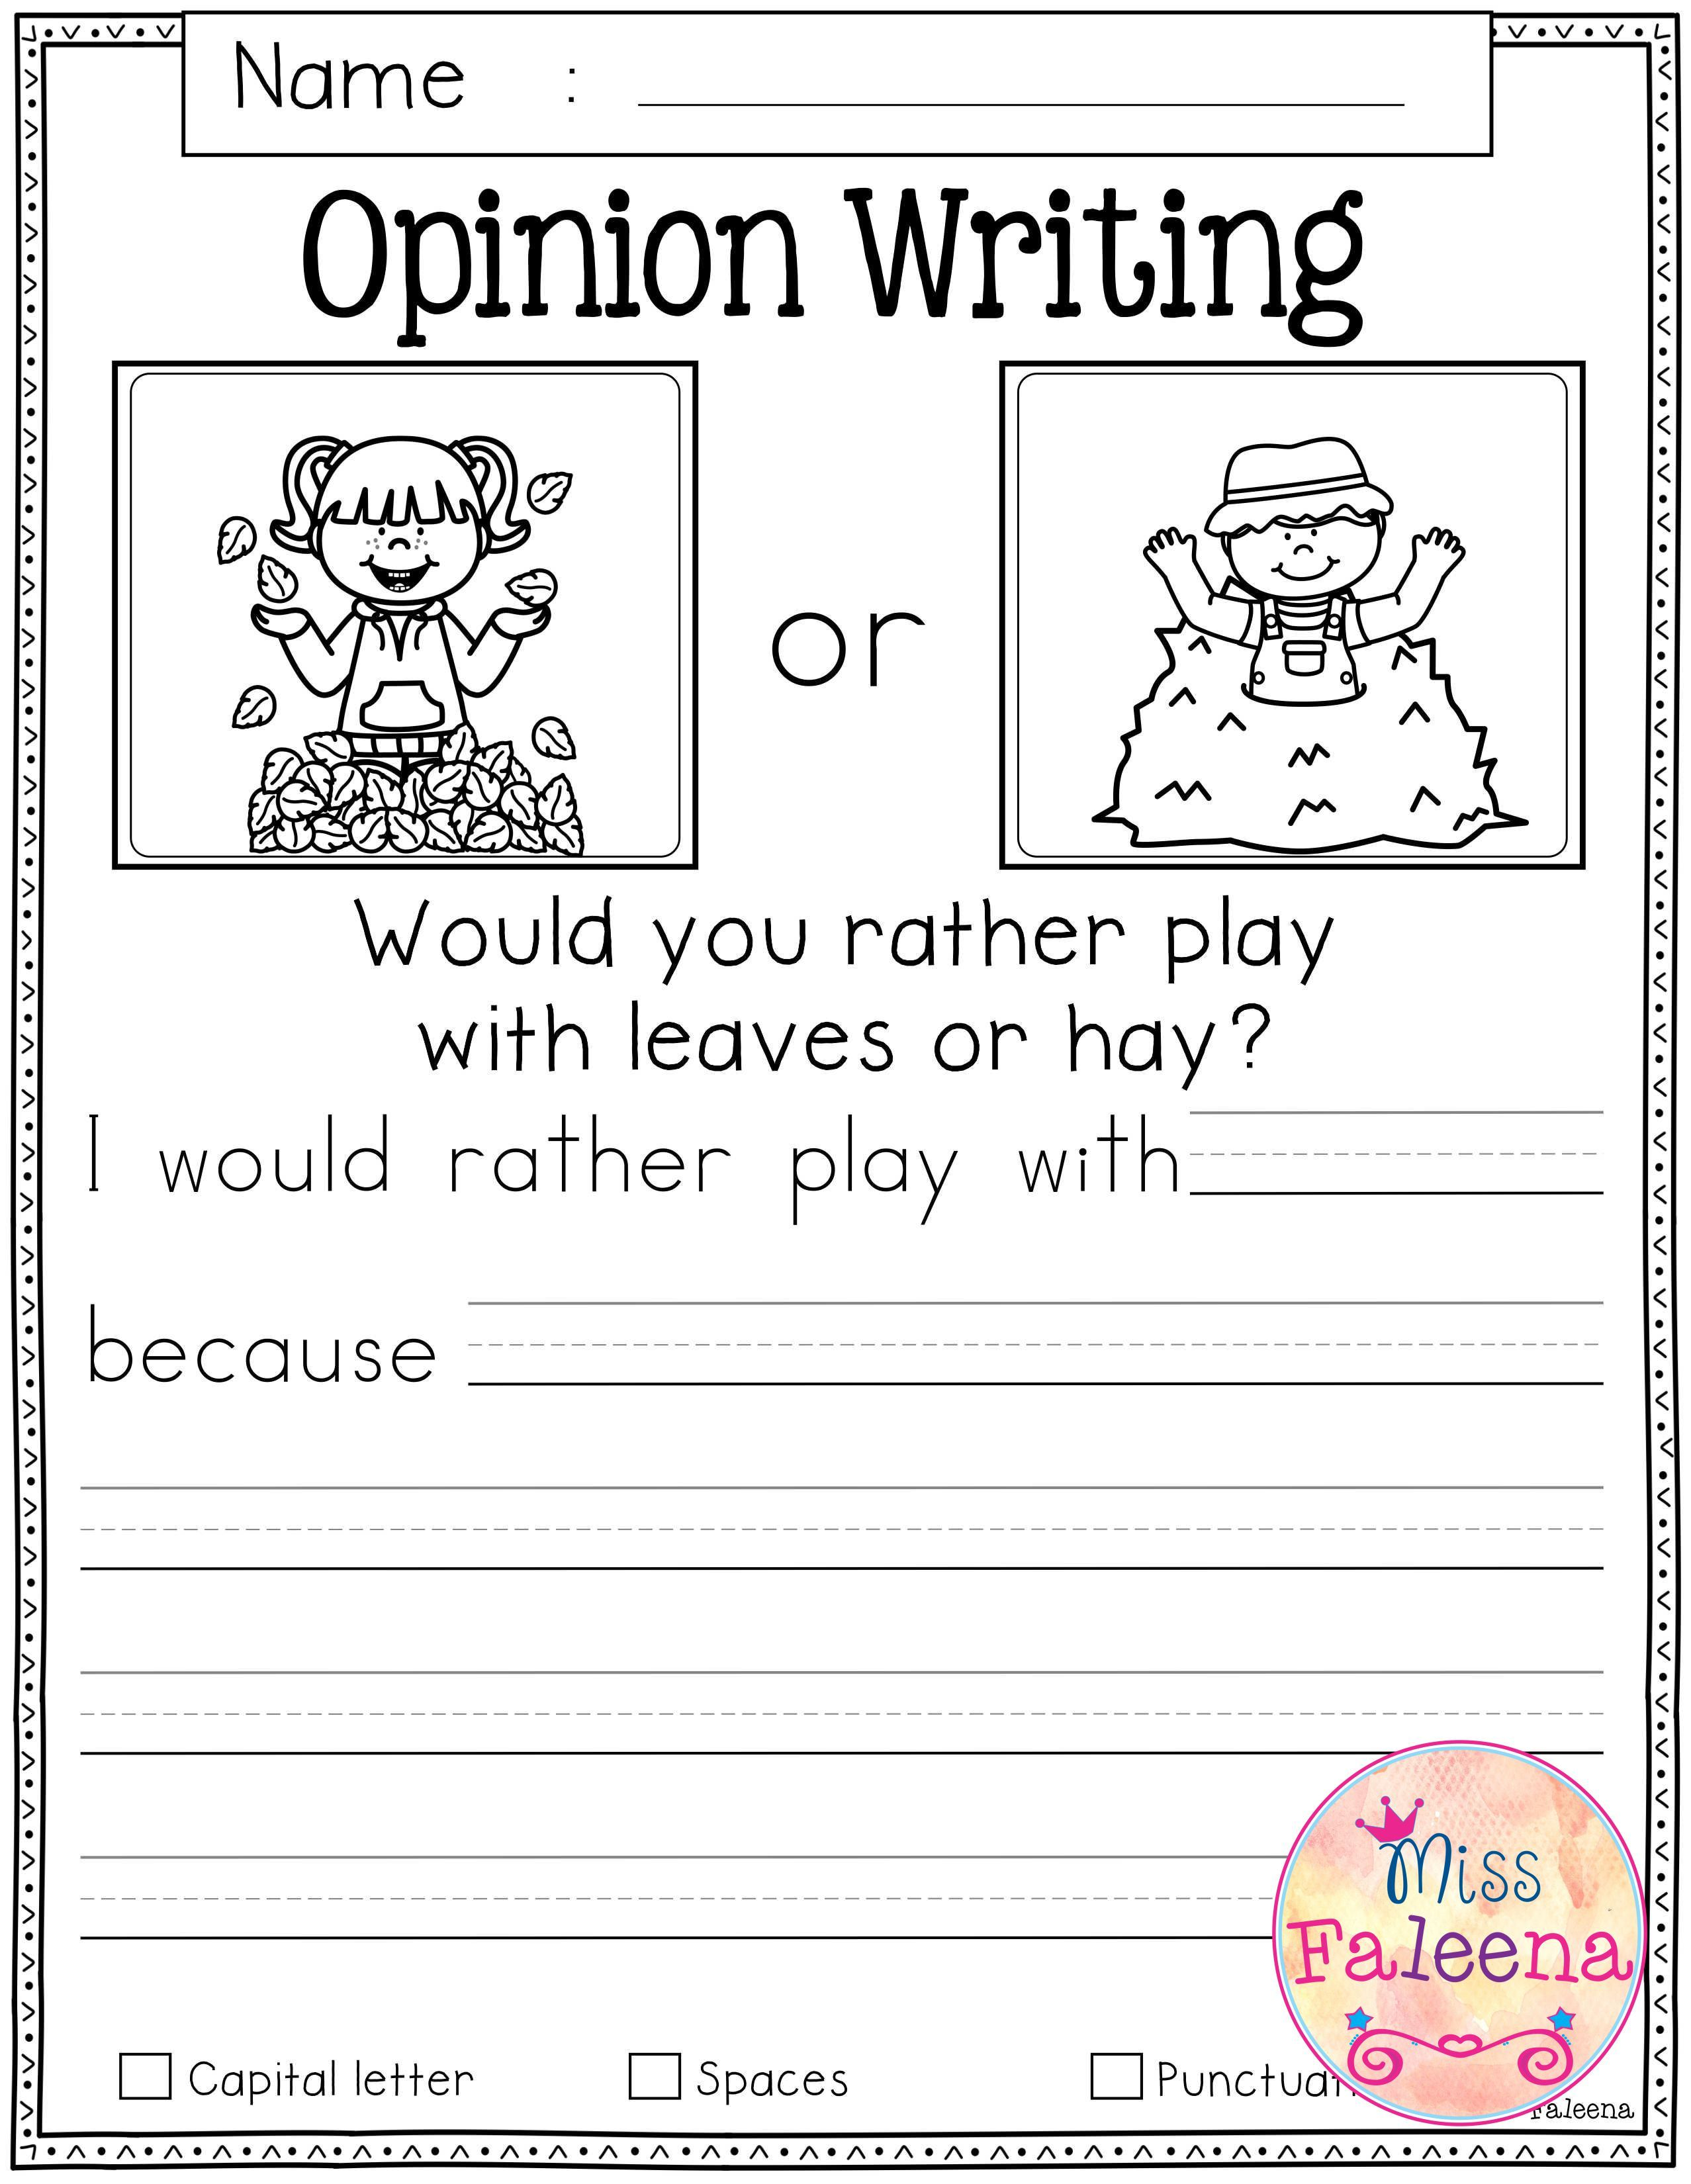 November Writing Prompts Writing Prompts For Kids November Writing Prompts Opinion Writing Prompts